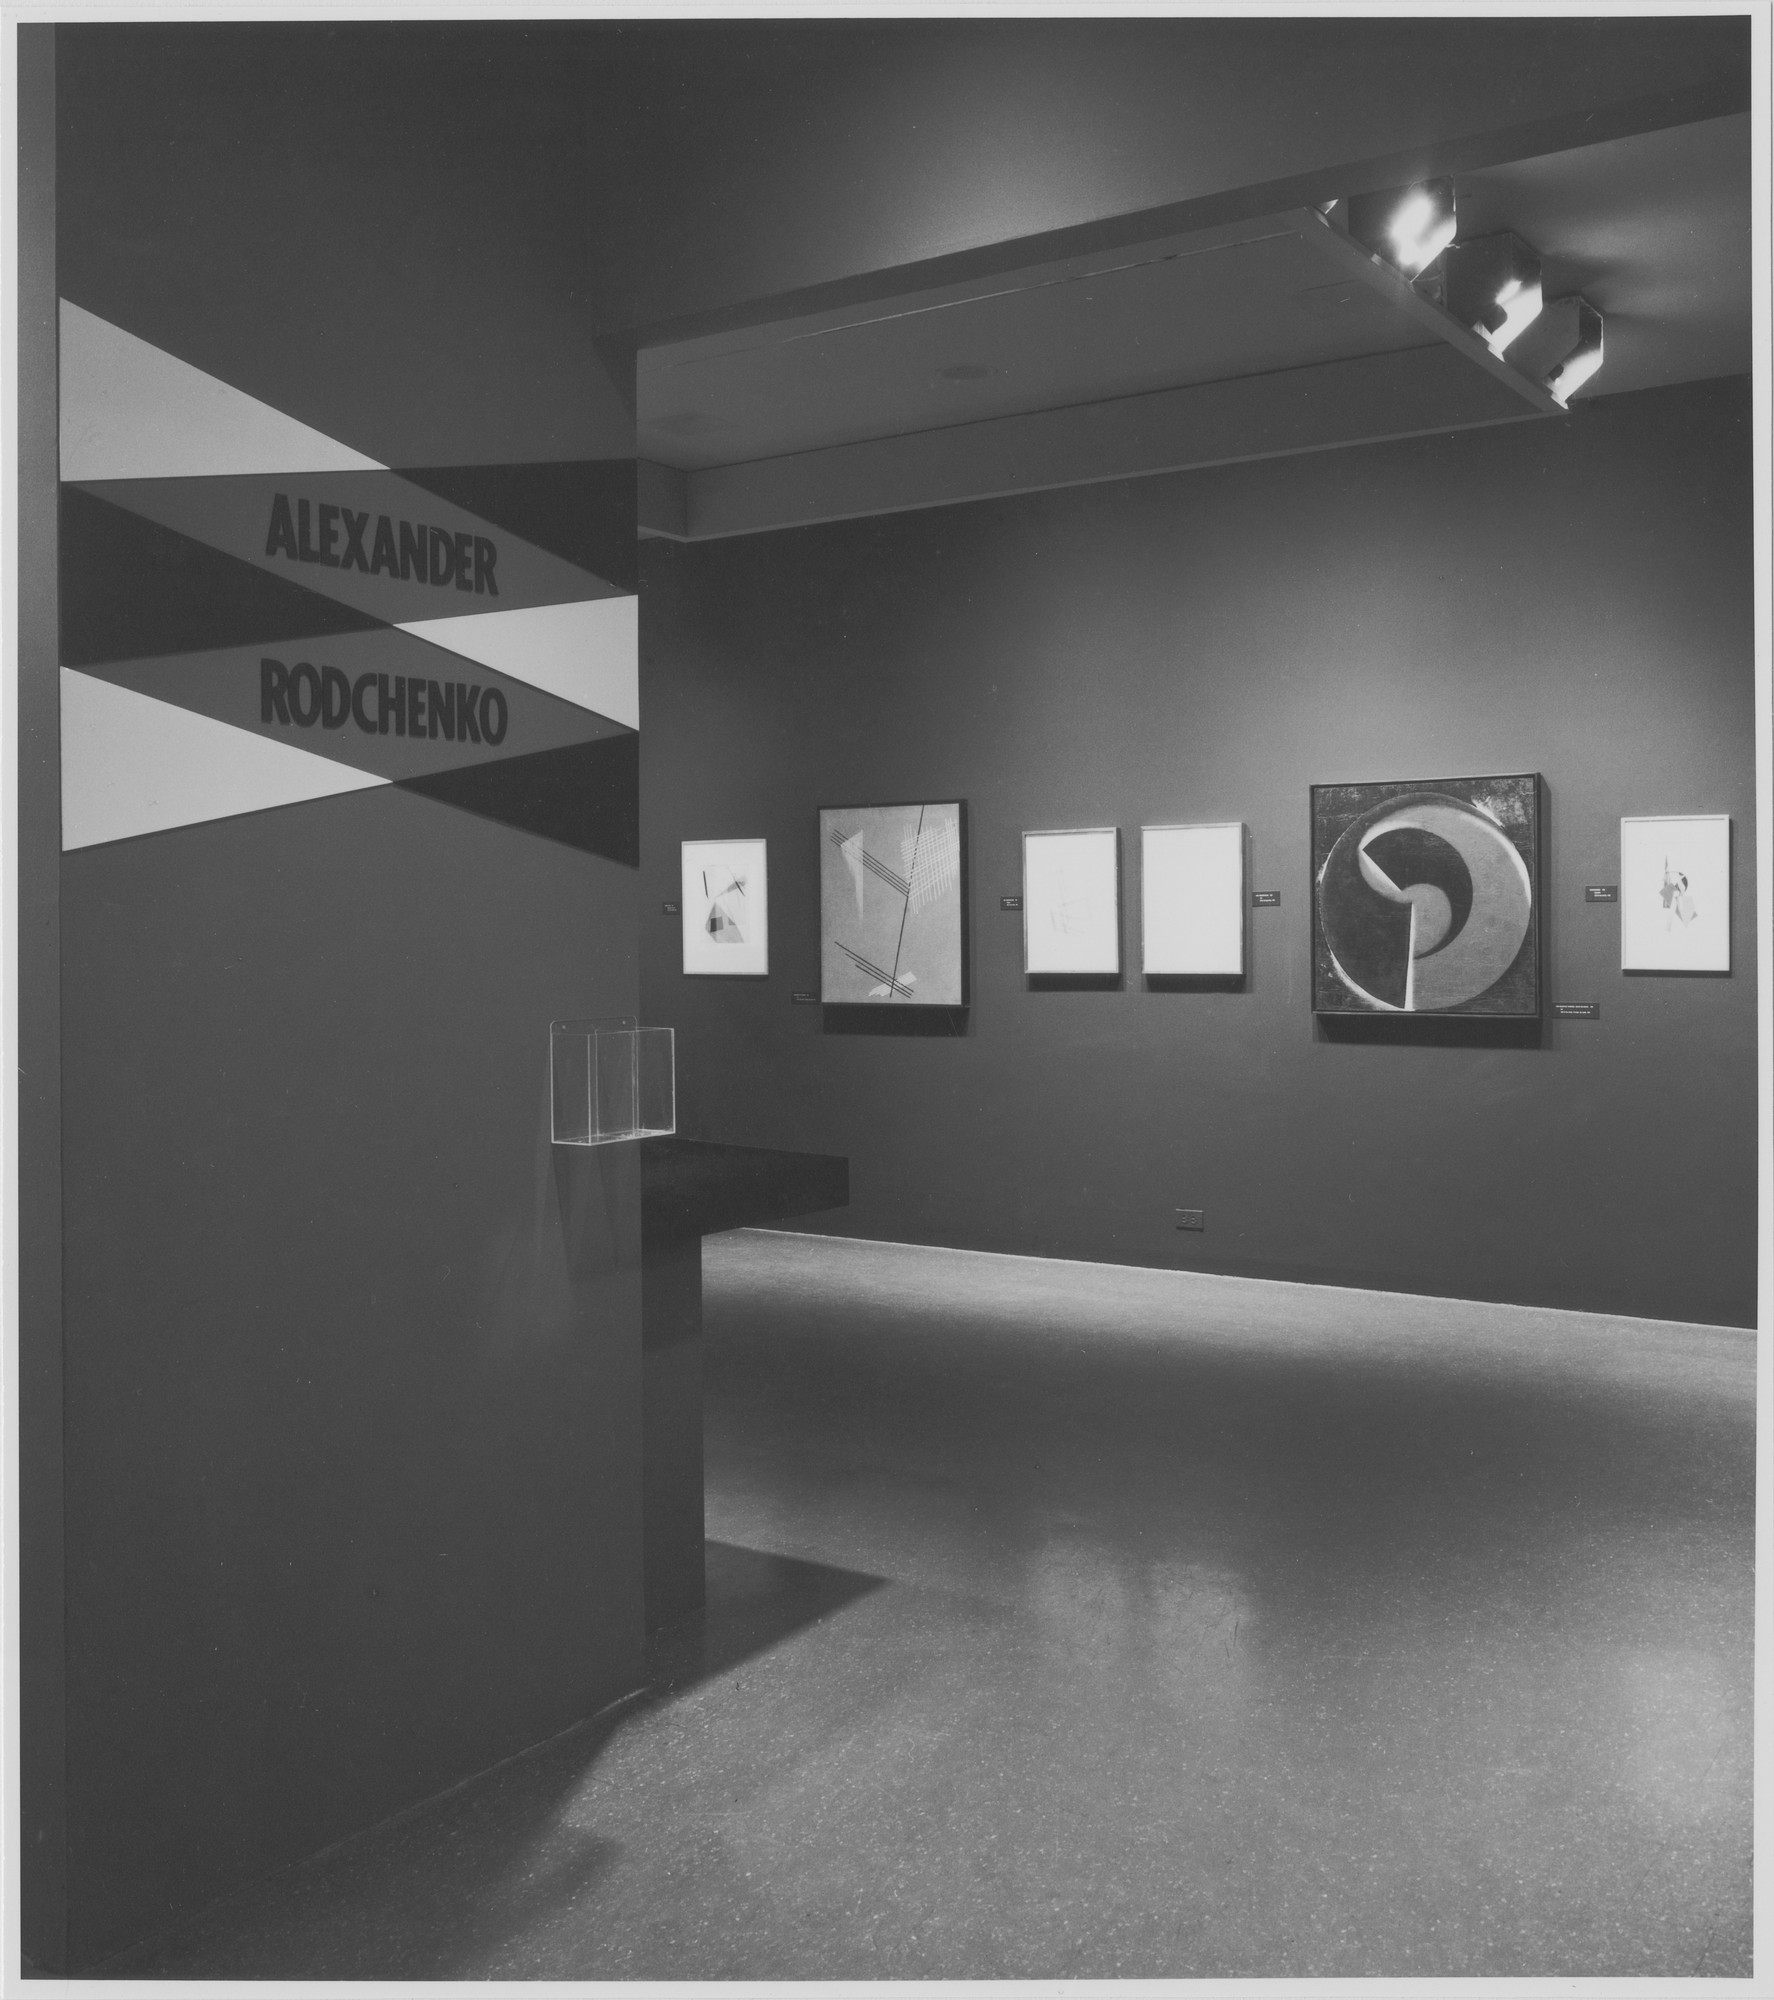 "Installation view of the exhibition, ""Alexander Rodchenko."" February 2, 1971–April 21, 1971. Photographic Archive. The Museum of Modern Art Archives, New York. IN953.1. Photograph by James Mathews."